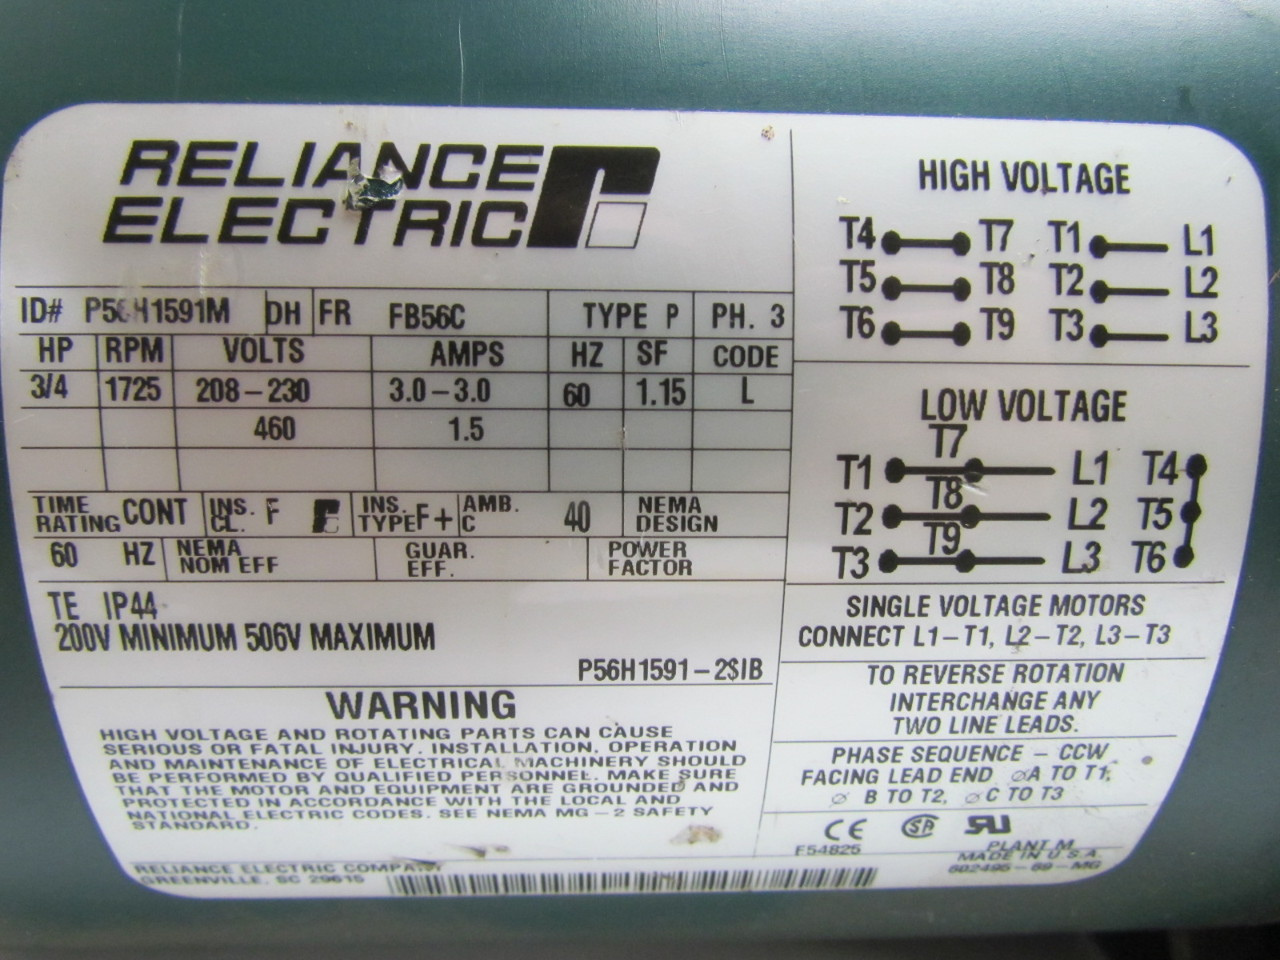 Reliance electric p56h1591m electric motor 3ph 3 4 hp for Reliance dc motor frame size chart